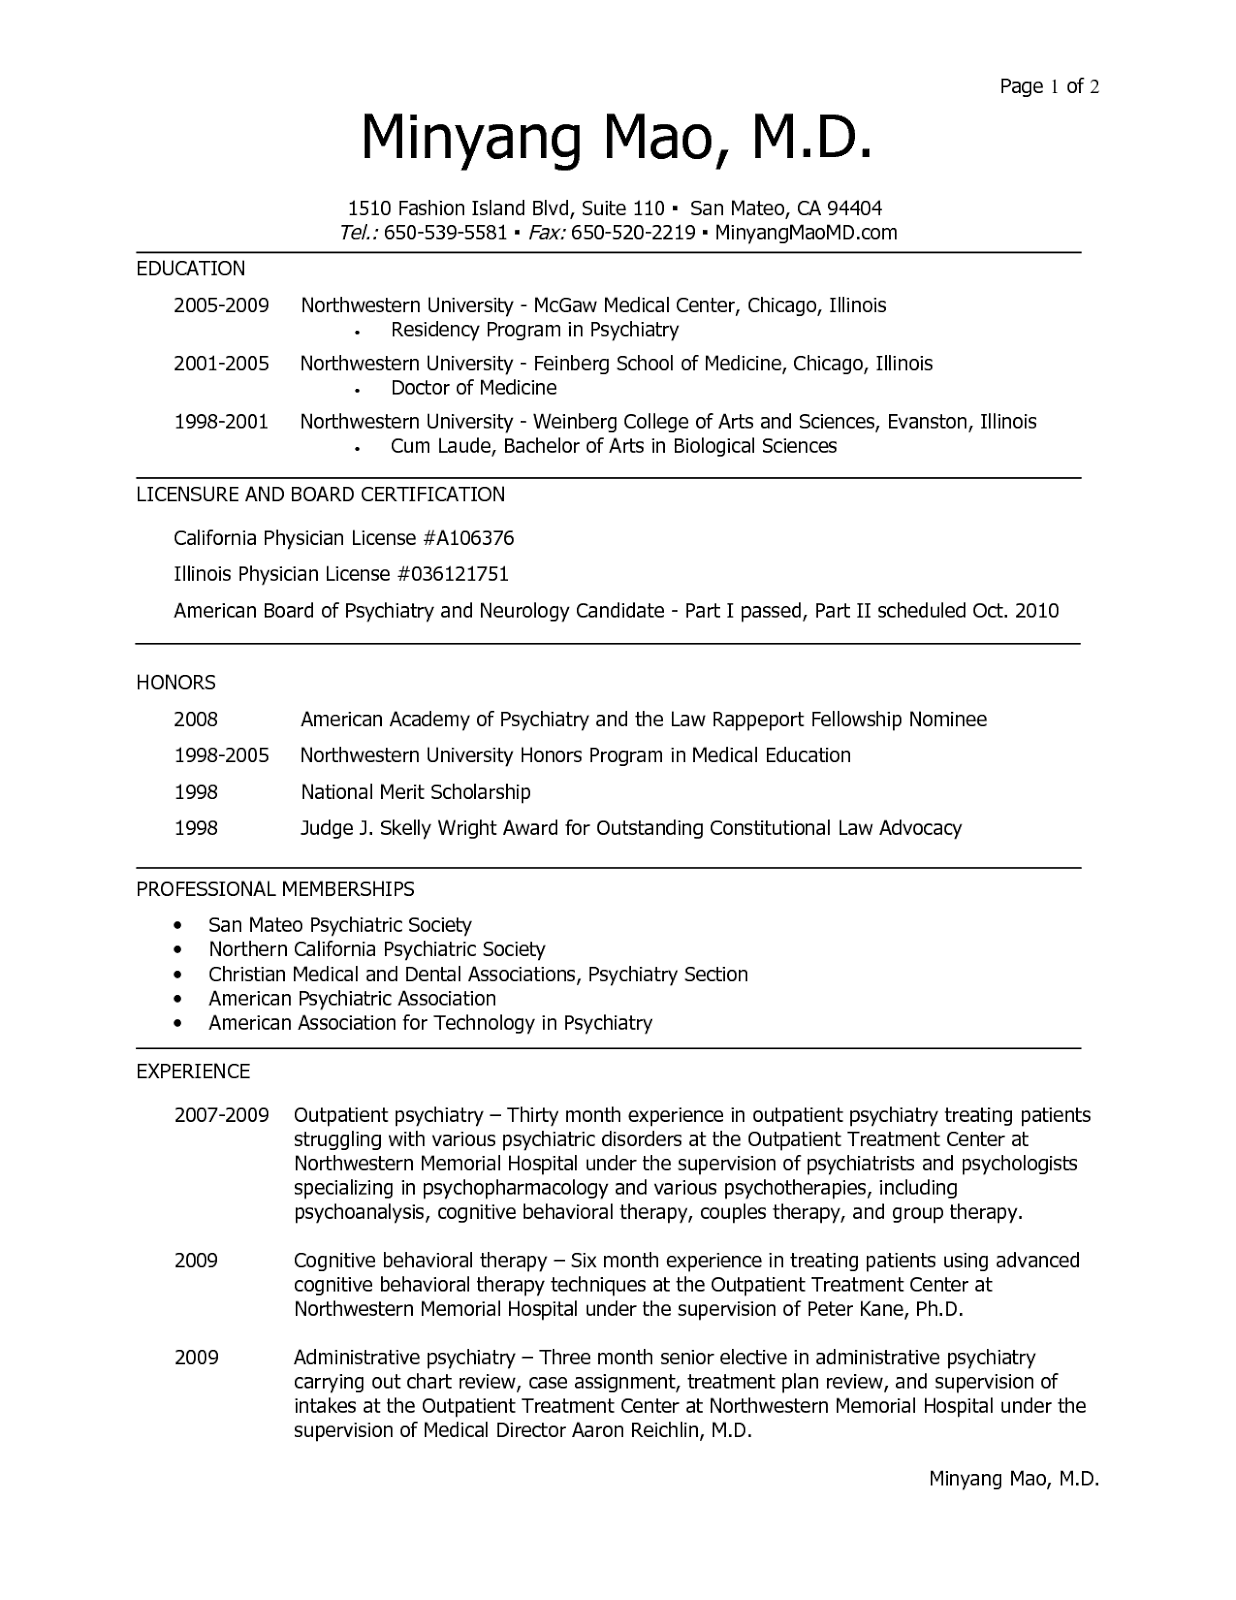 medical resume format pdf resume example medical resume format pdf medical resume format sample 8 examples in word pdf format resumes samples